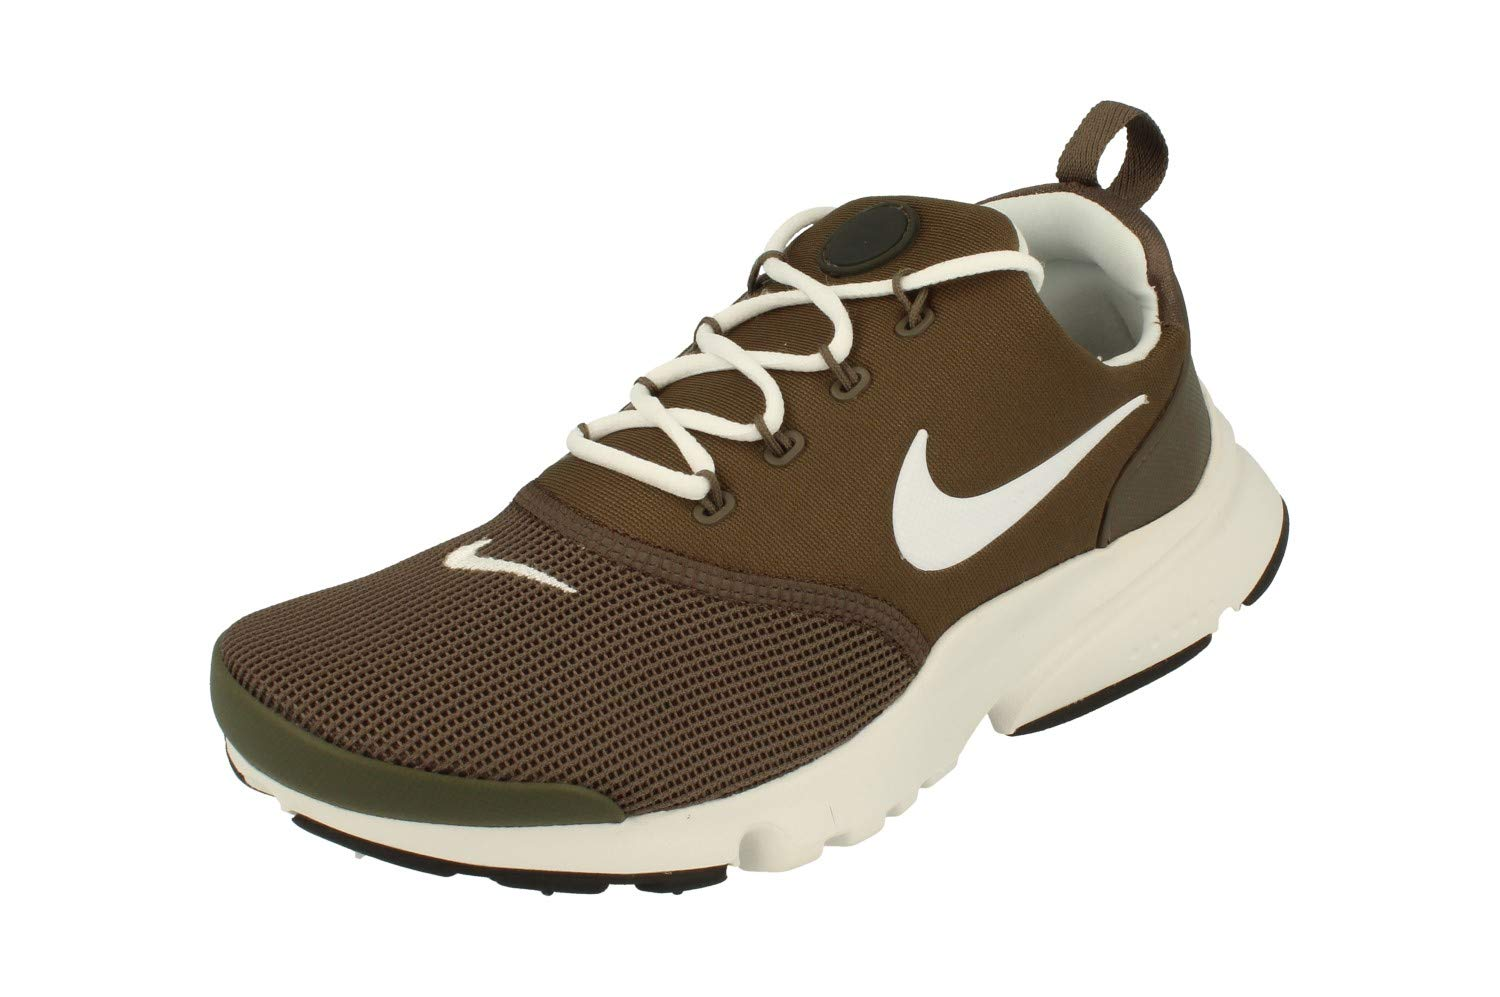 new product 81f76 7f2cb Nike Sidewinder 2 ACG Brown Leather Orange Outdoors Slippers Sandals  395727-280 [US Size 9]